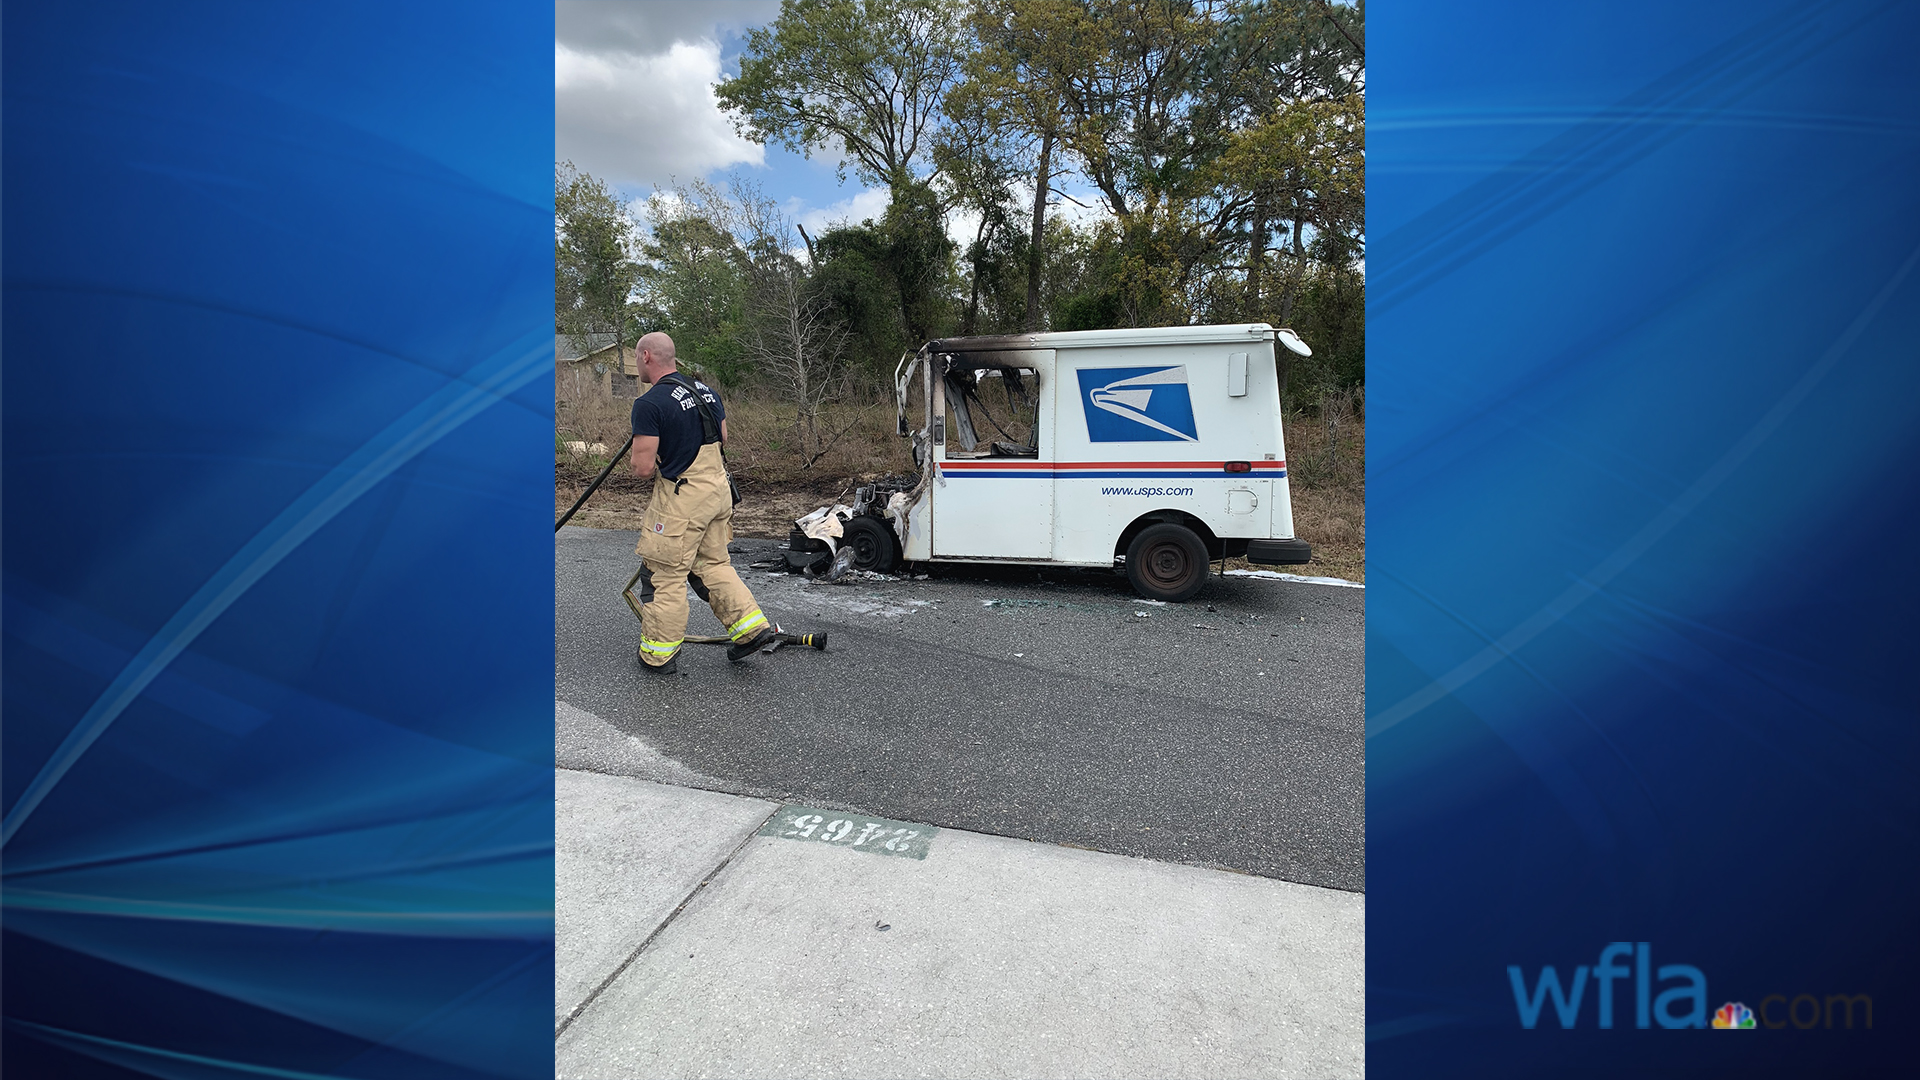 Neighbors credit driver for saving packages after mail truck goes up